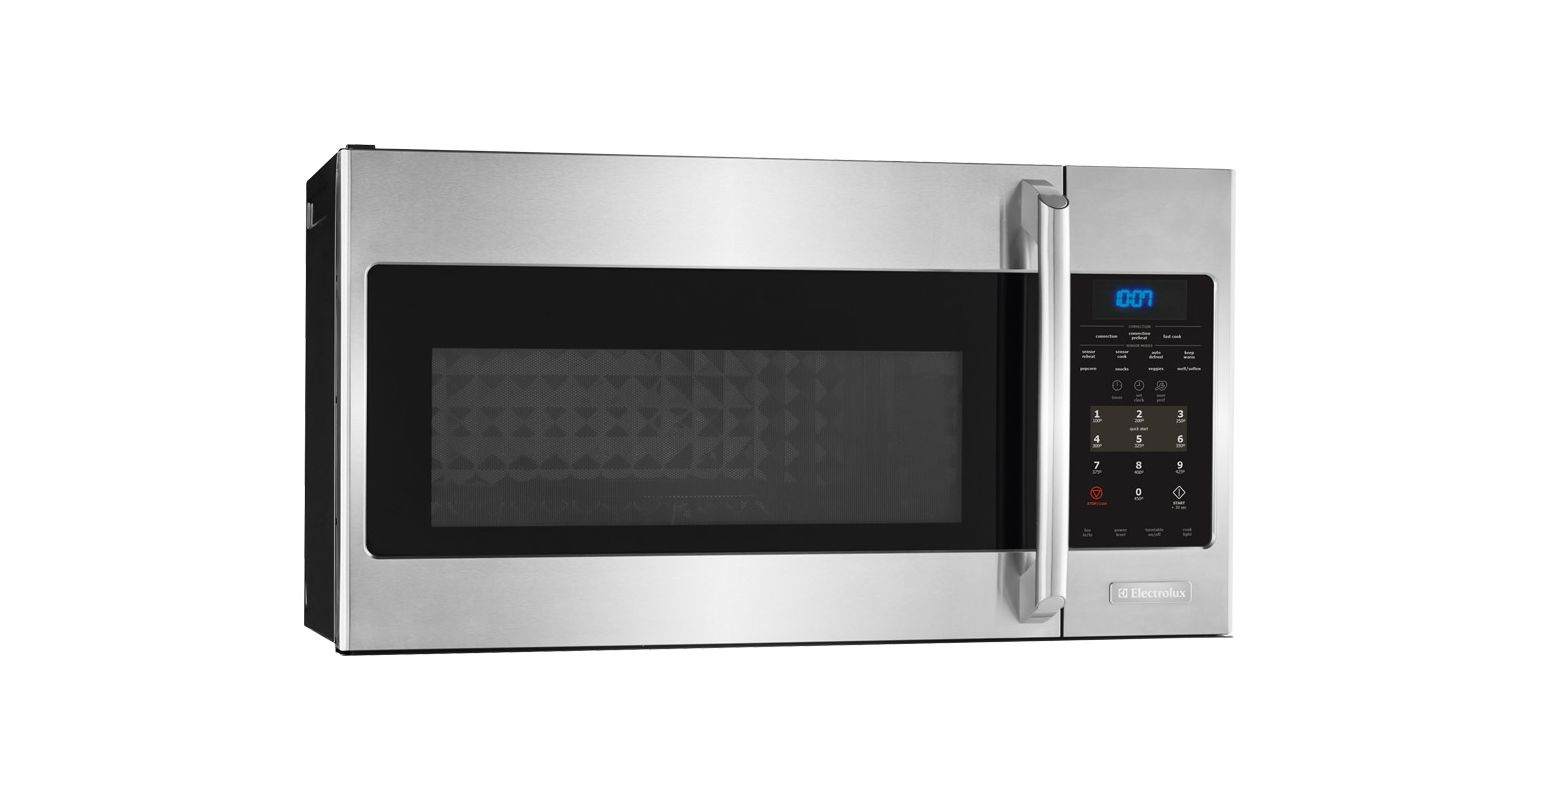 Electrolux EI30SM35QS 30 Inch Over-the-Range Convection Microwave Oven with 300 photo